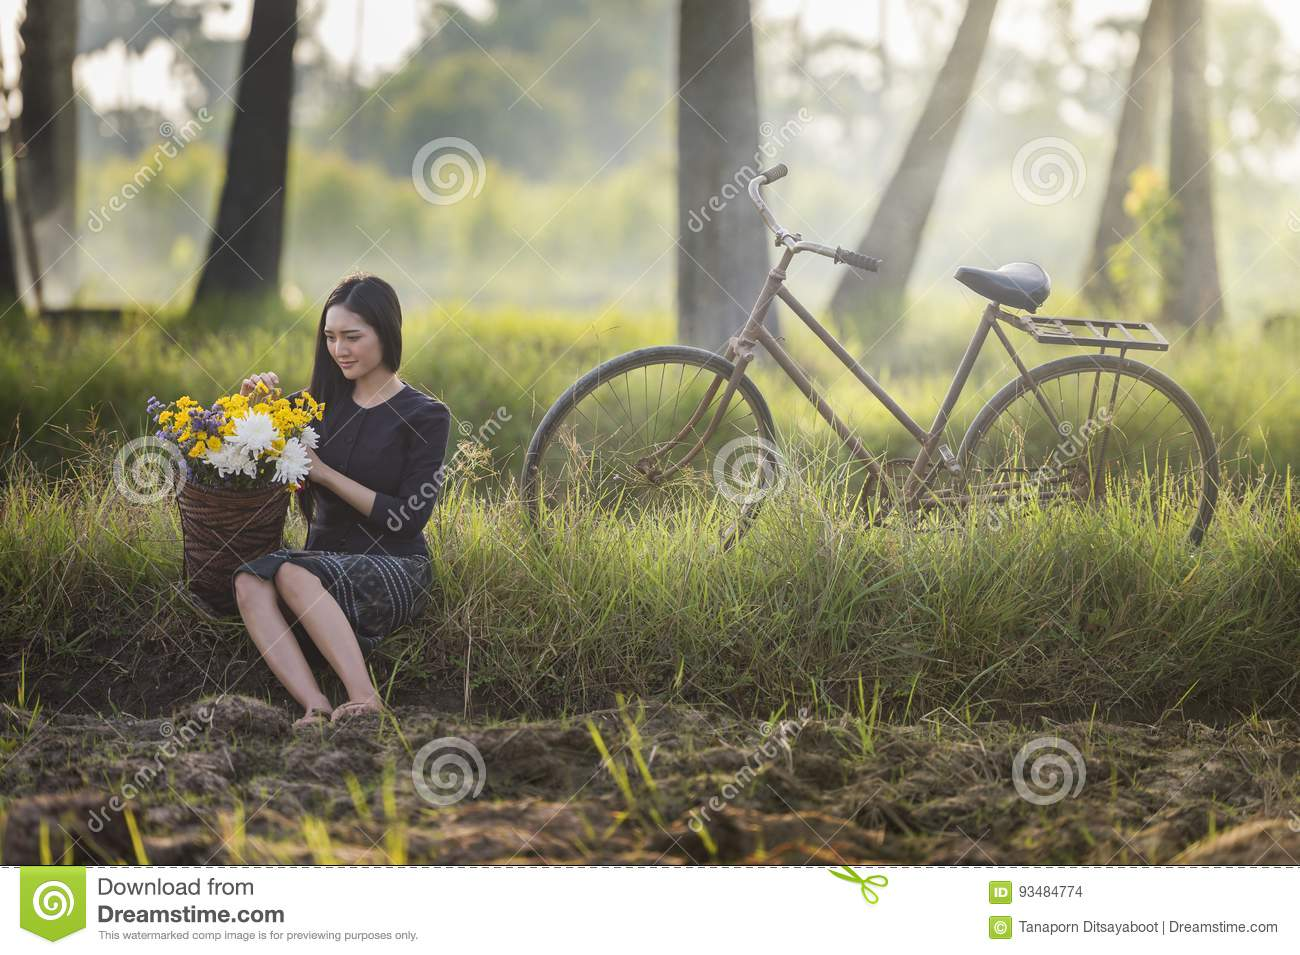 Beautiful Asian woman in local traditional dress with old bicycle and flower basket on the green summer field.